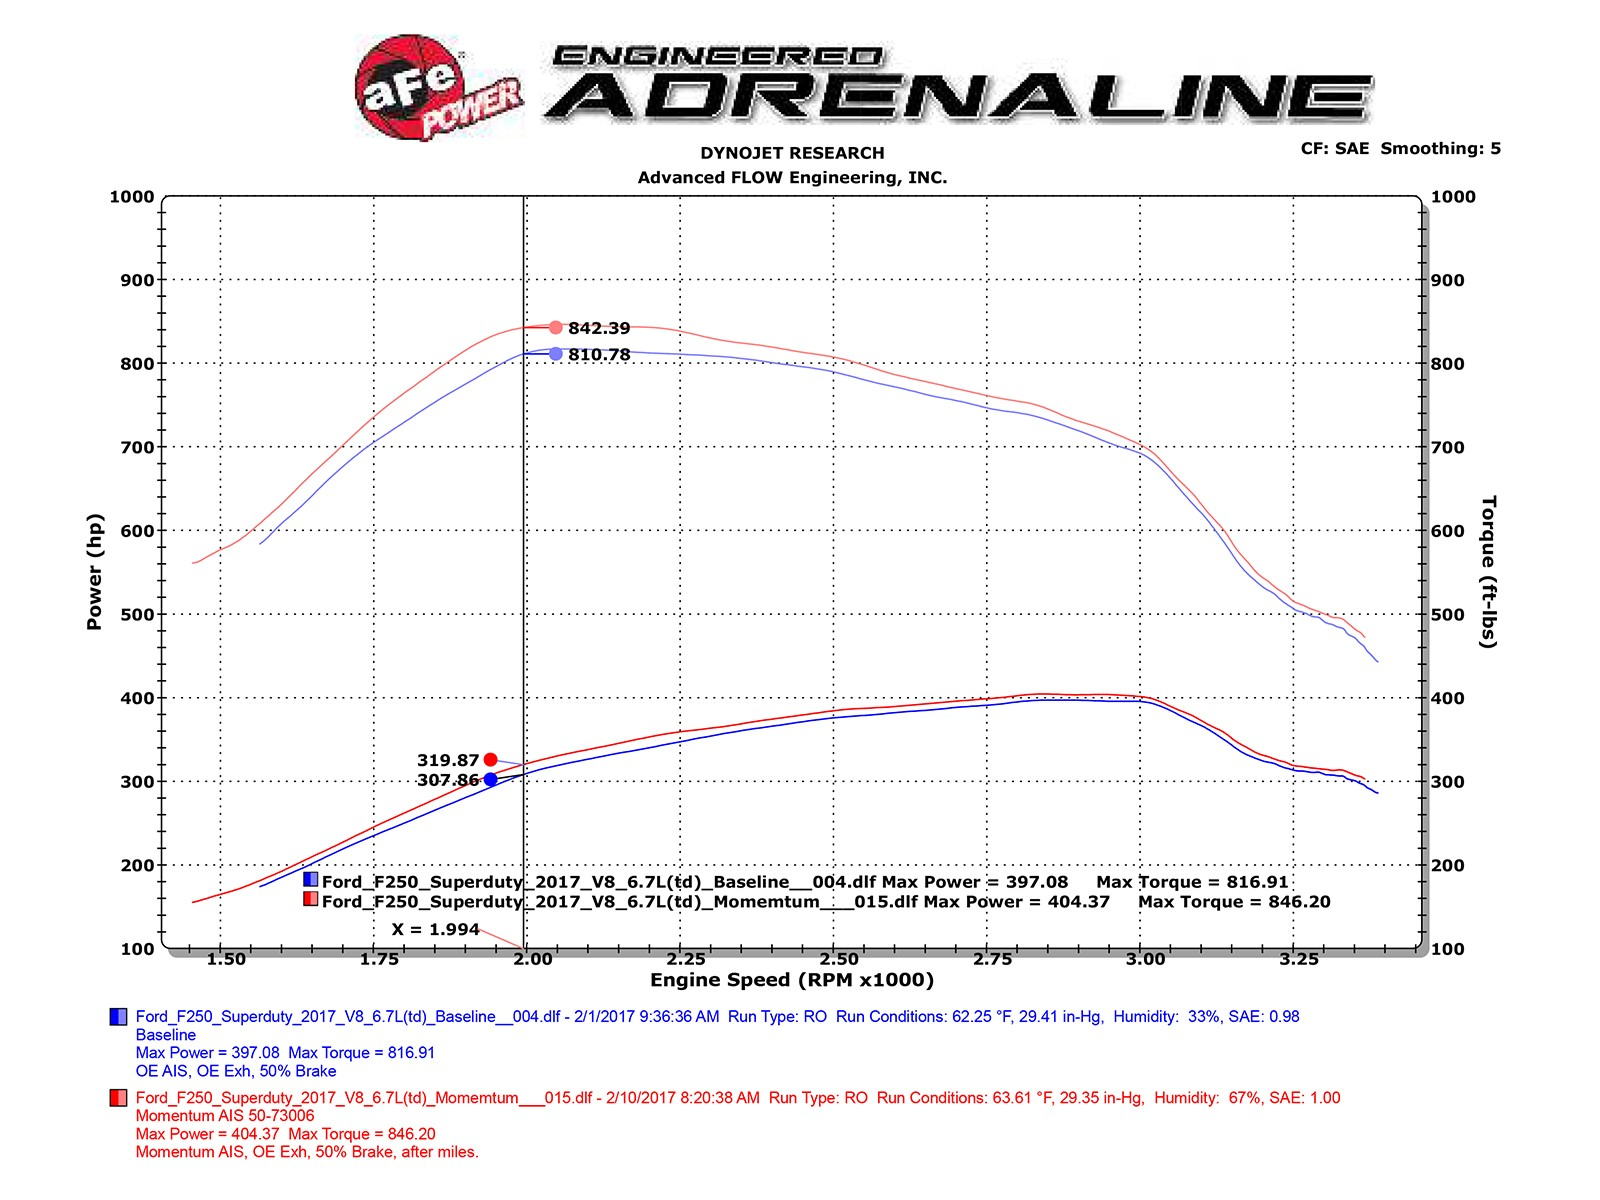 Momentum Hd Pro 10r Cold Air Intake System Afe Power 2011 Honda Civic Fuel Filter Adds Up To 21 Flow Increase 12 Hp Horsepower 32 Lbs X Ft Torque Max Gains